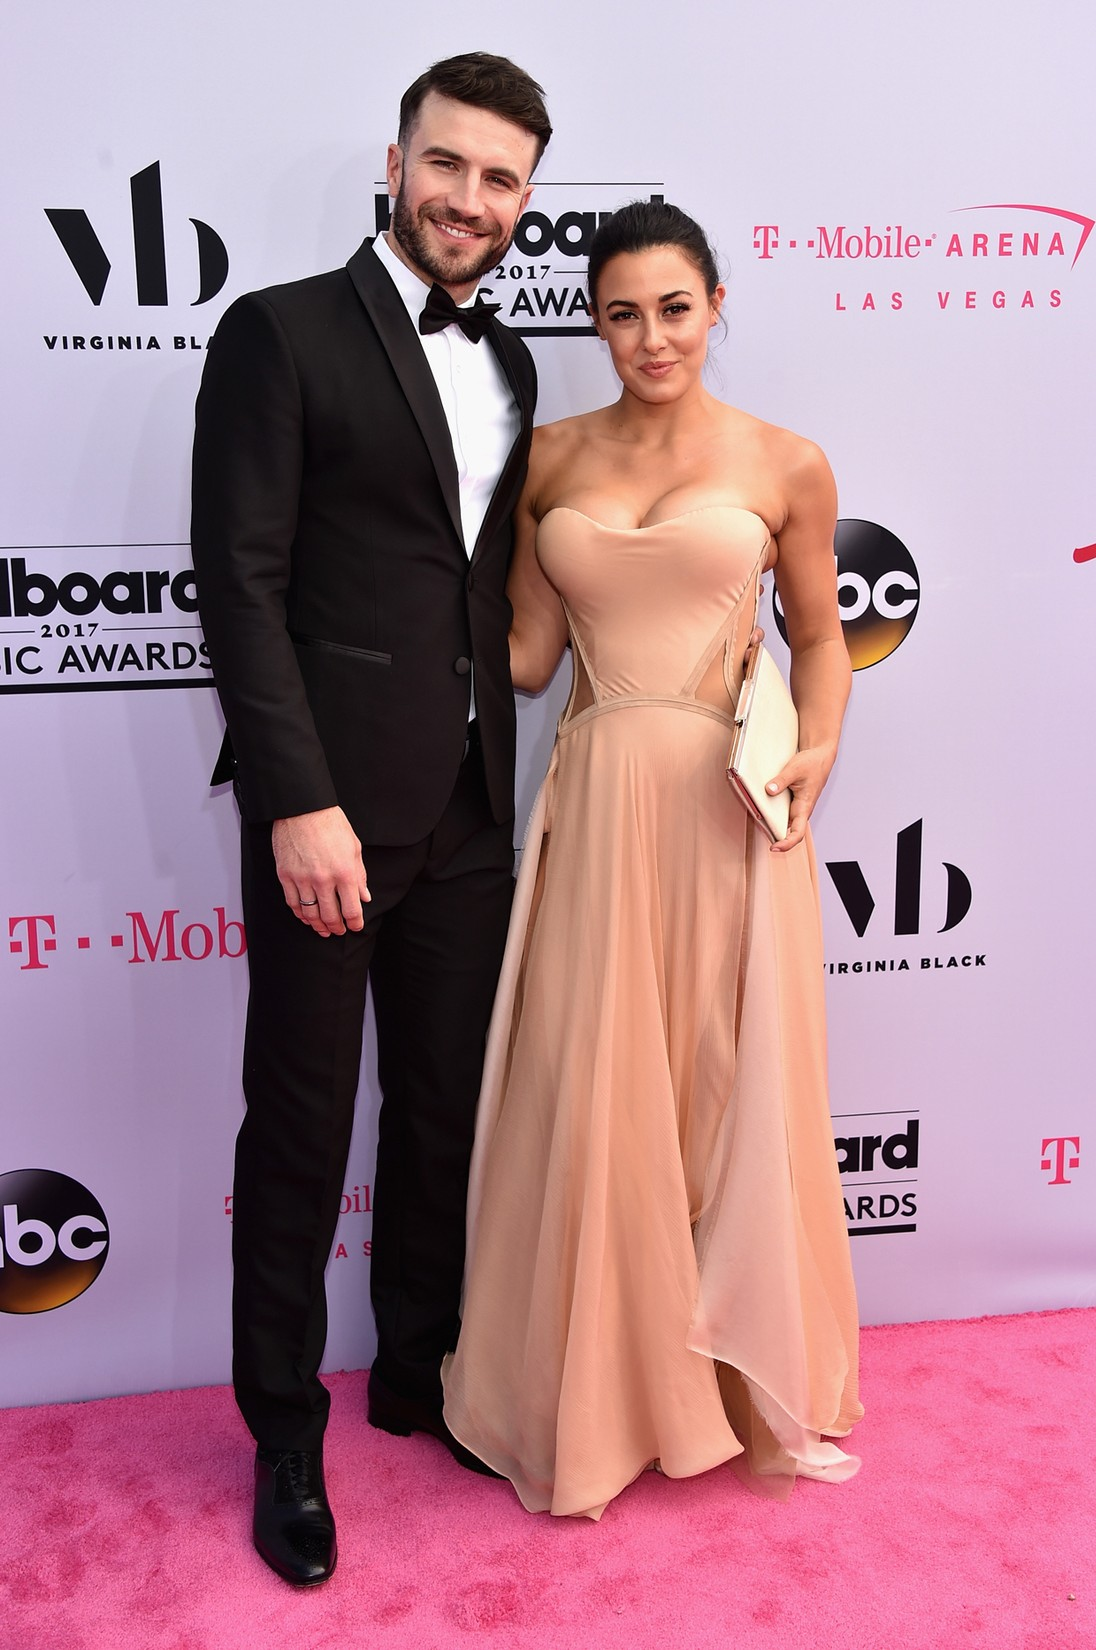 Sam Hunt and Hannah Lee Fowler attend the 2017 Billboard Music Awards at T-Mobile Arena on May 21, 2017 in Las Vegas.